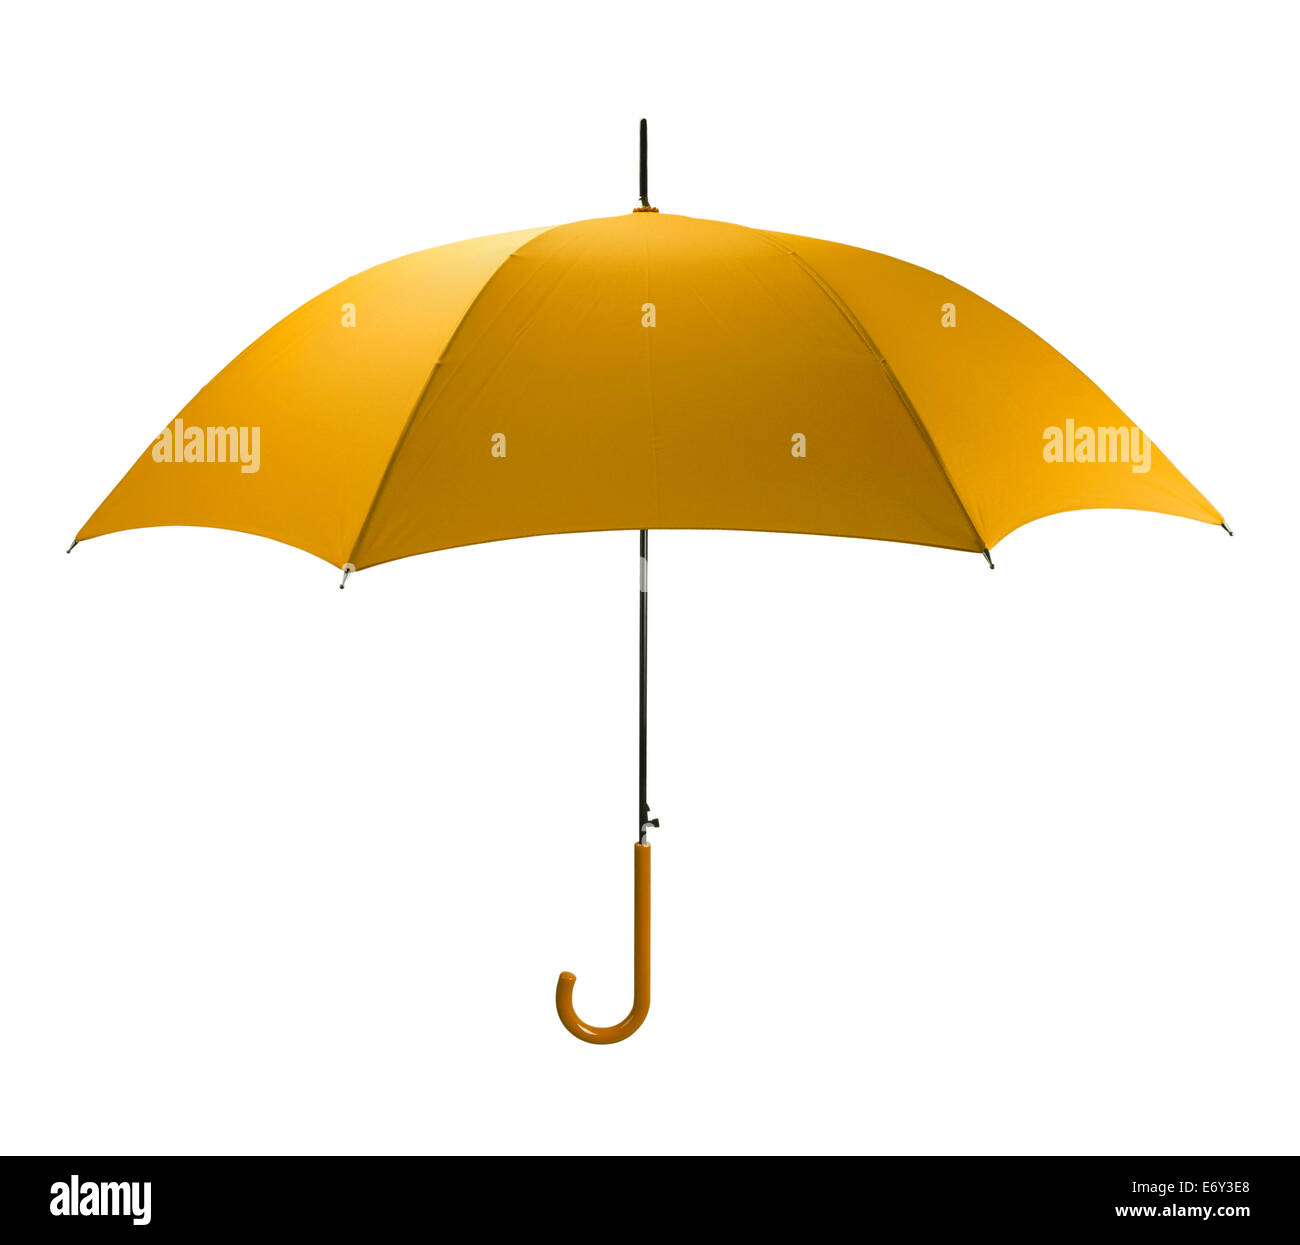 Bright Yellow Umbrella Tilted Isolated on White Background. - Stock Image